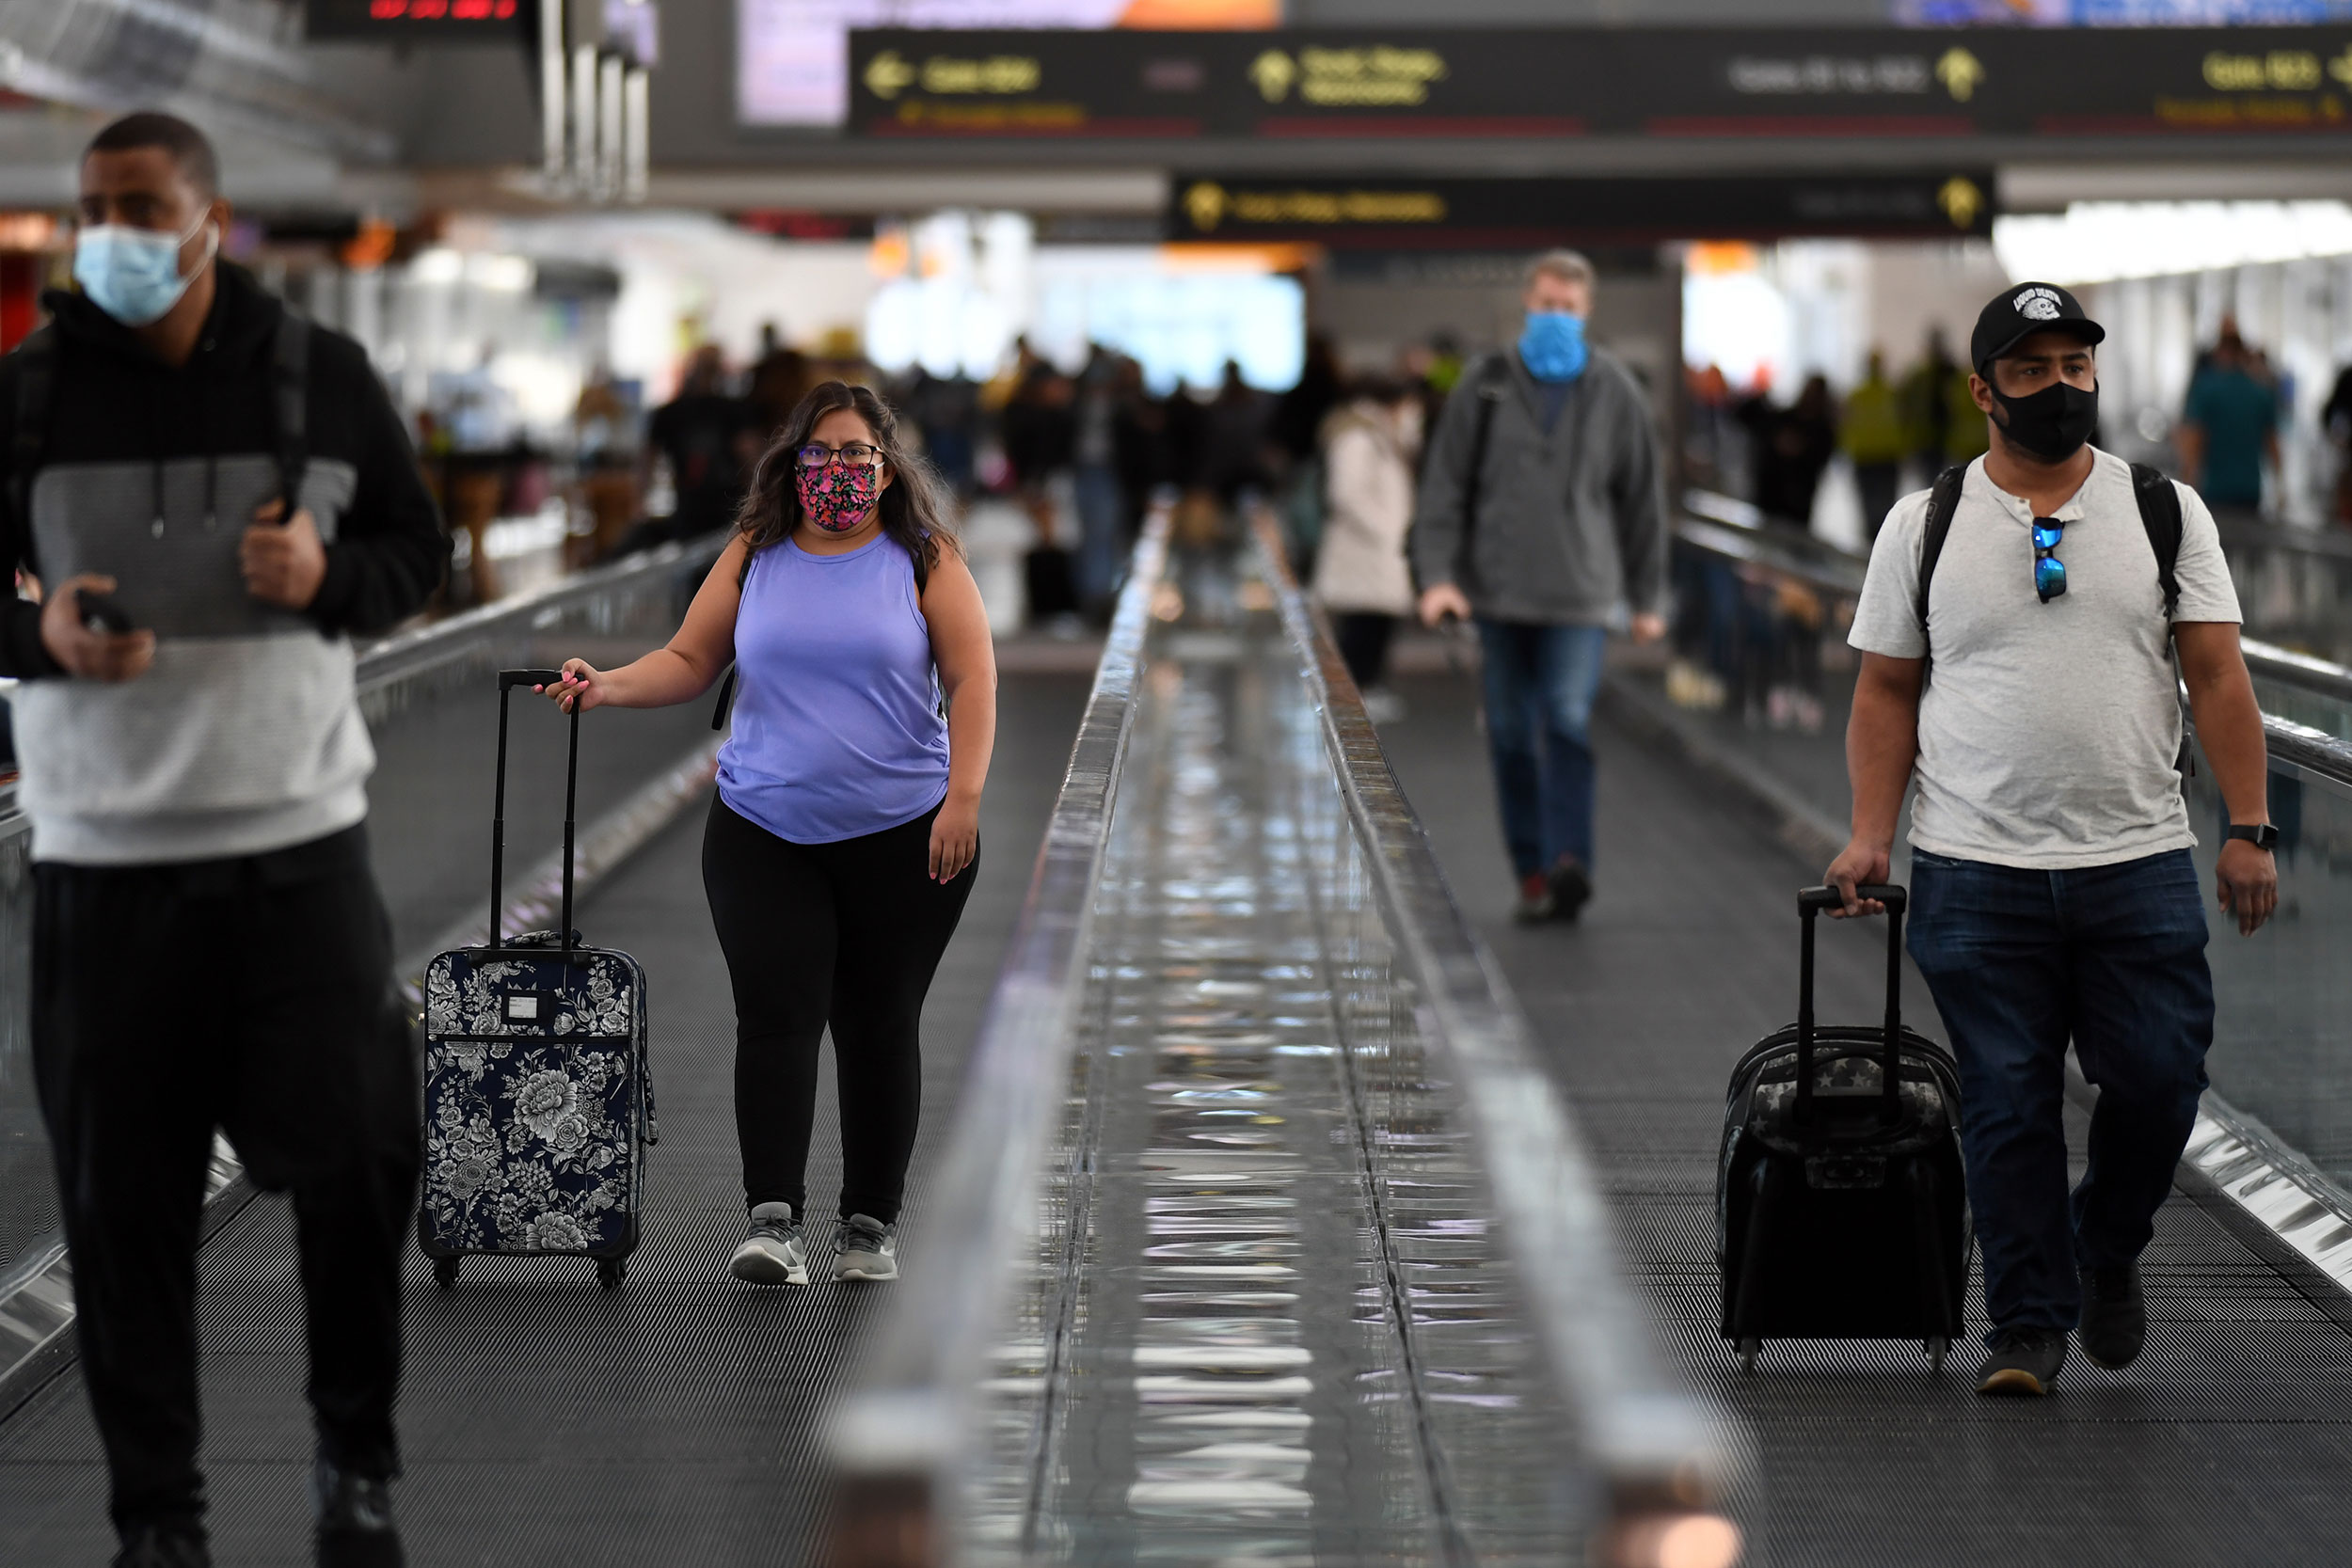 More than 1 million people passed through US airports Friday, despite Covid warnings